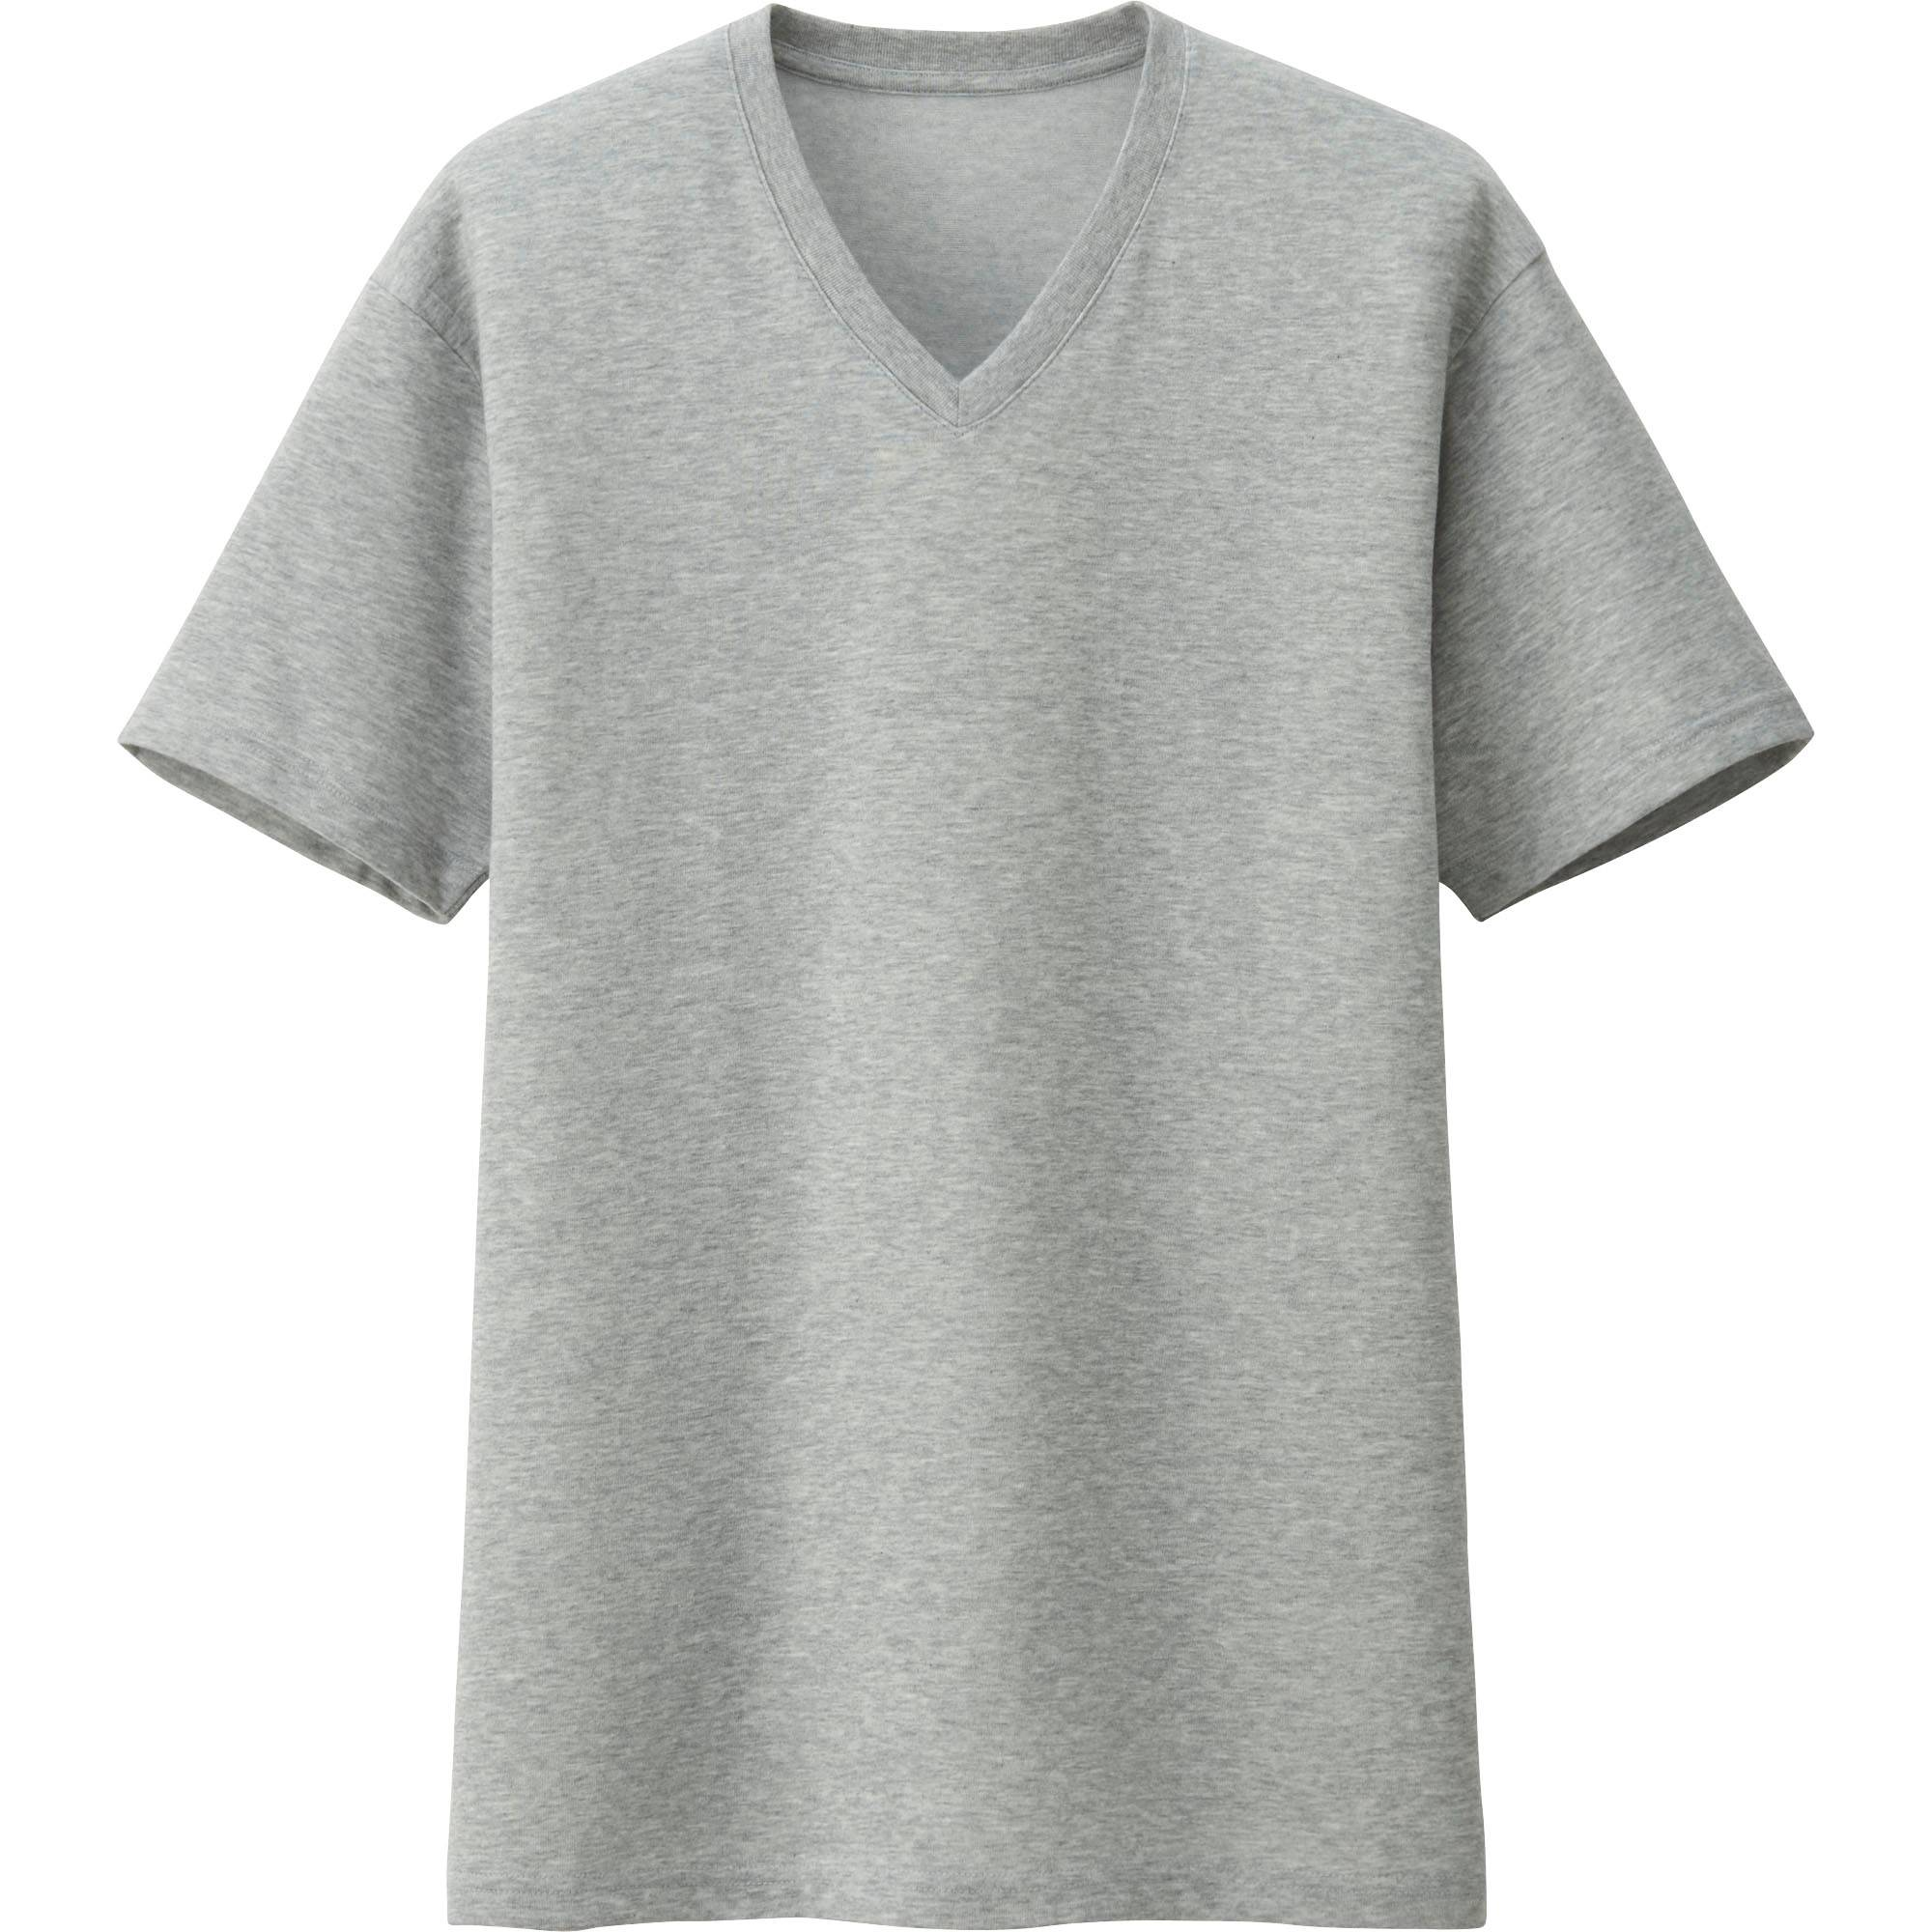 Black t shirts v neck - Men Packaged Dry V Neck Short Sleeve T Shirt Gray Large